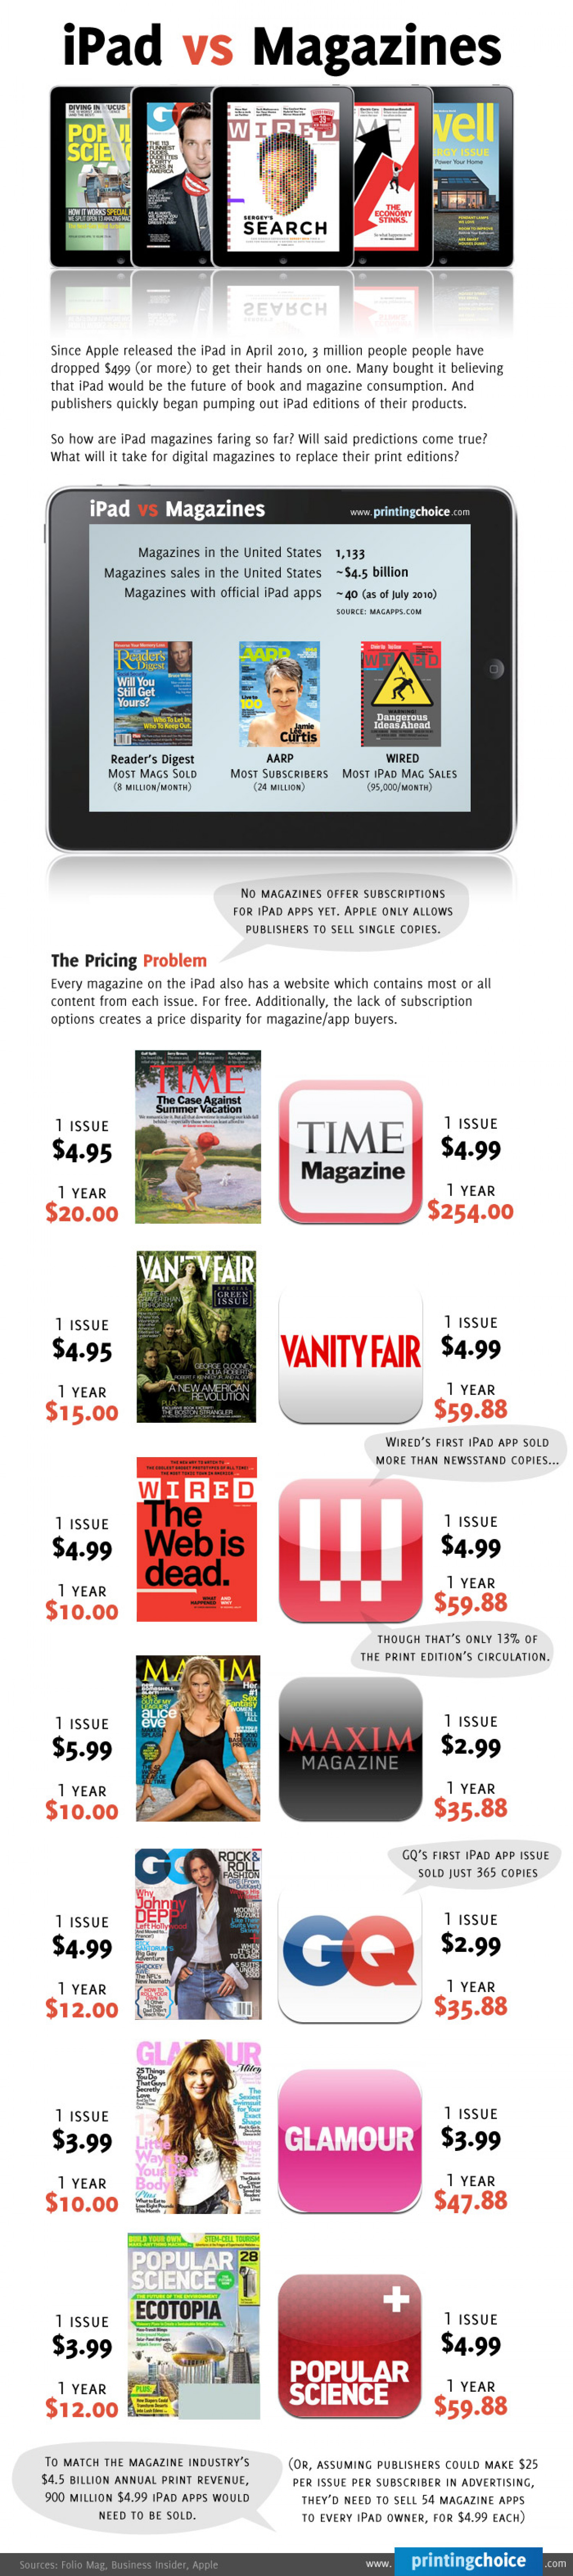 iPad vs Magazines Infographic